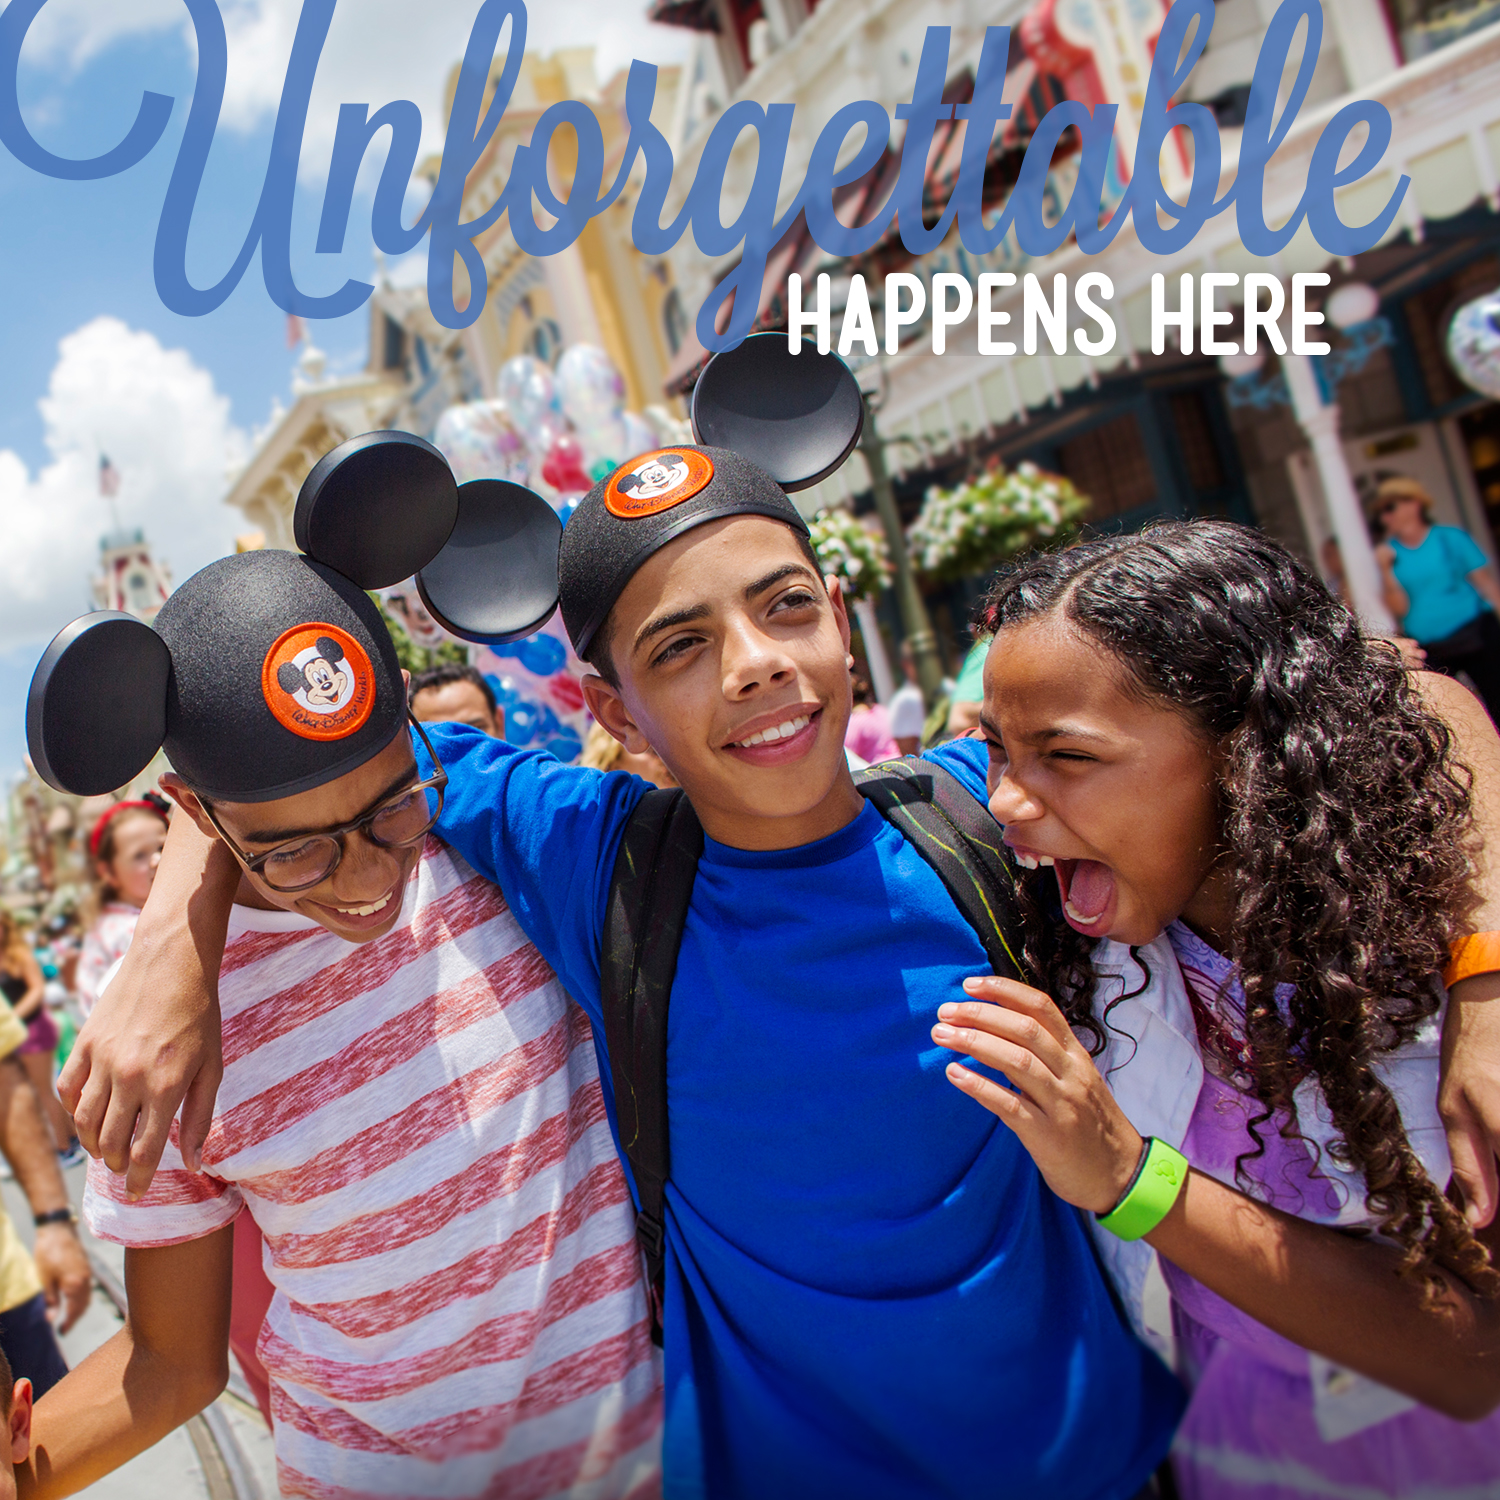 Disney's Unforgettable Happens Here: Web Components